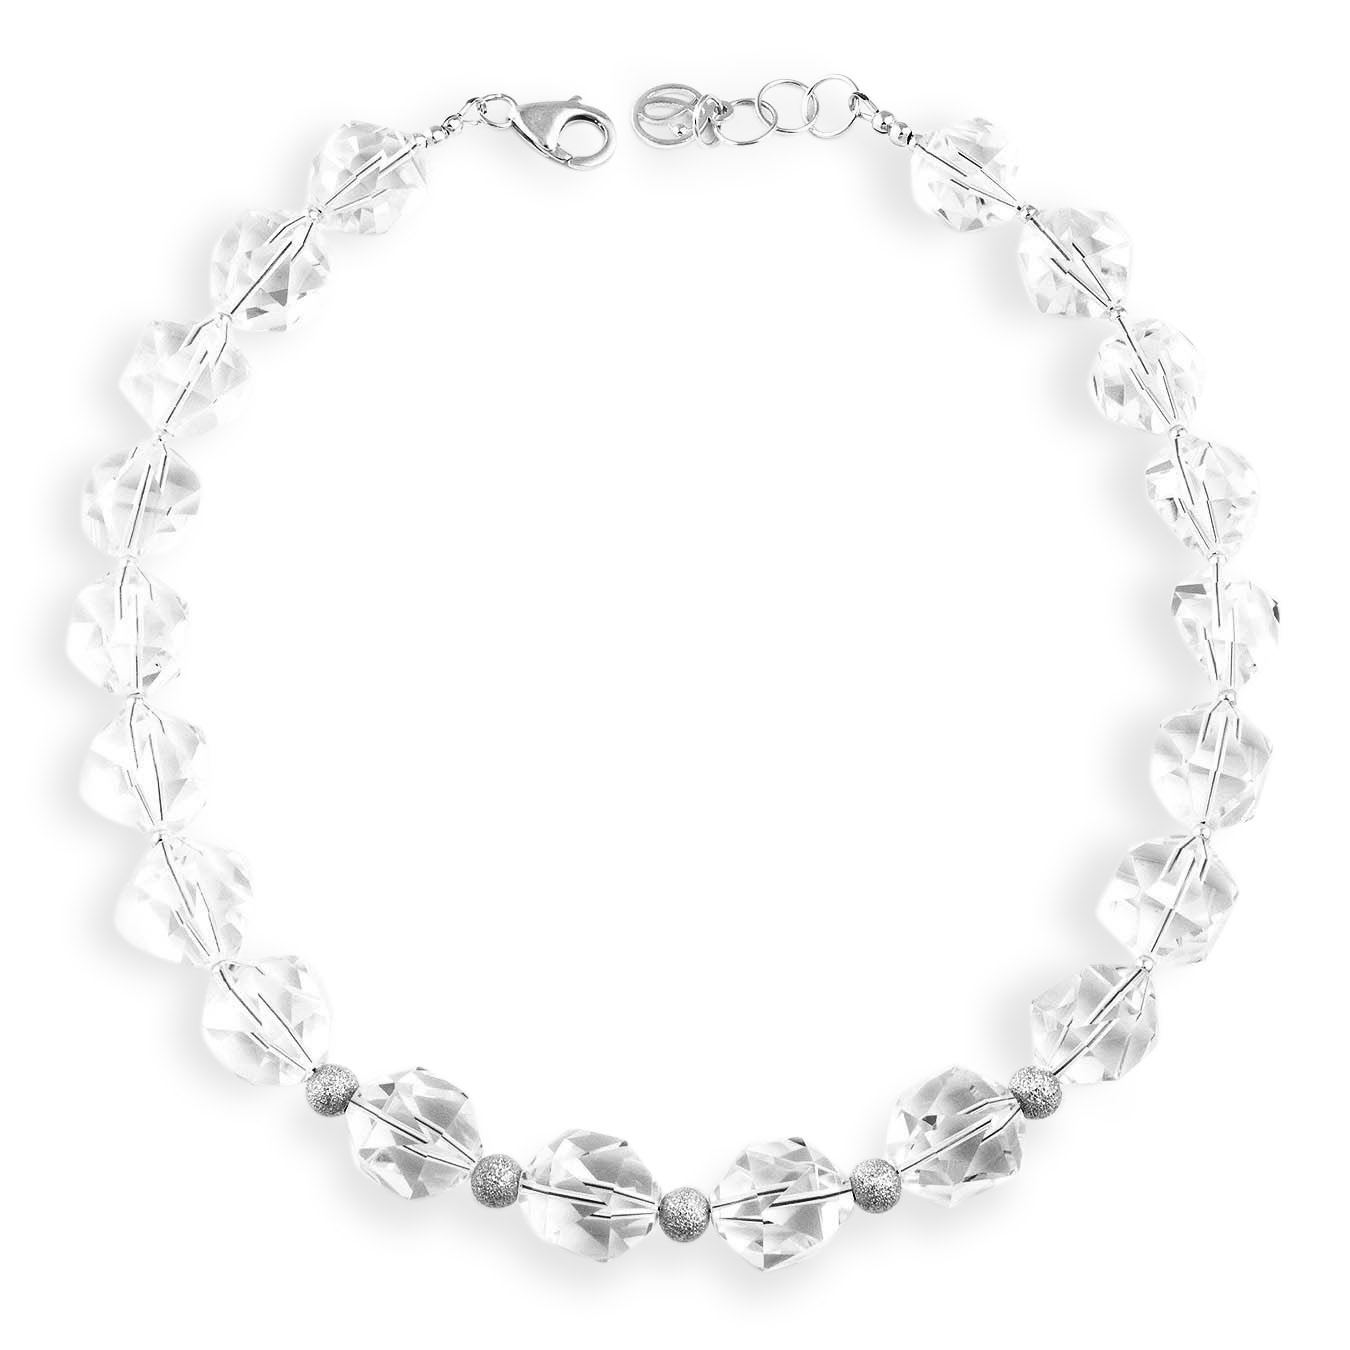 Handcrafted choker style bead jewelry made with faceted rock crystal